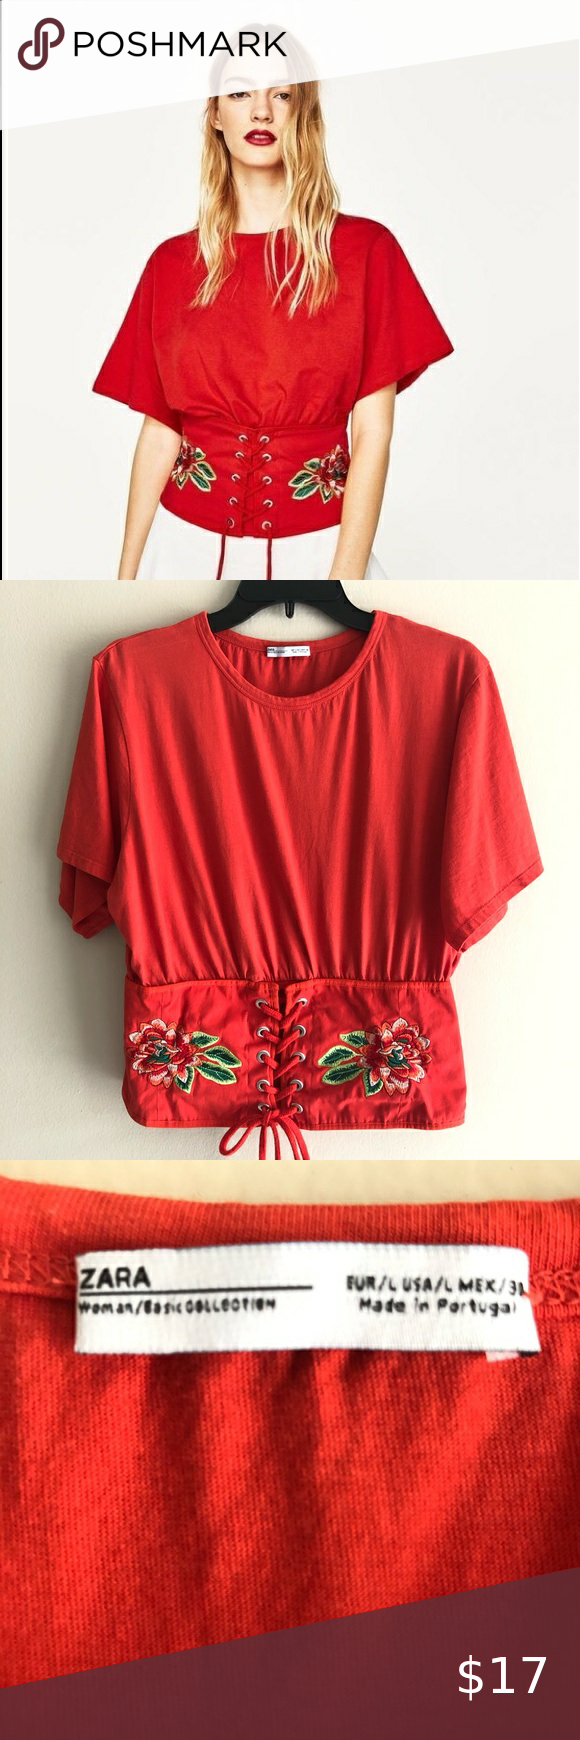 Photo of Zara Orange Embroidered Corset Top Size L In good condition …